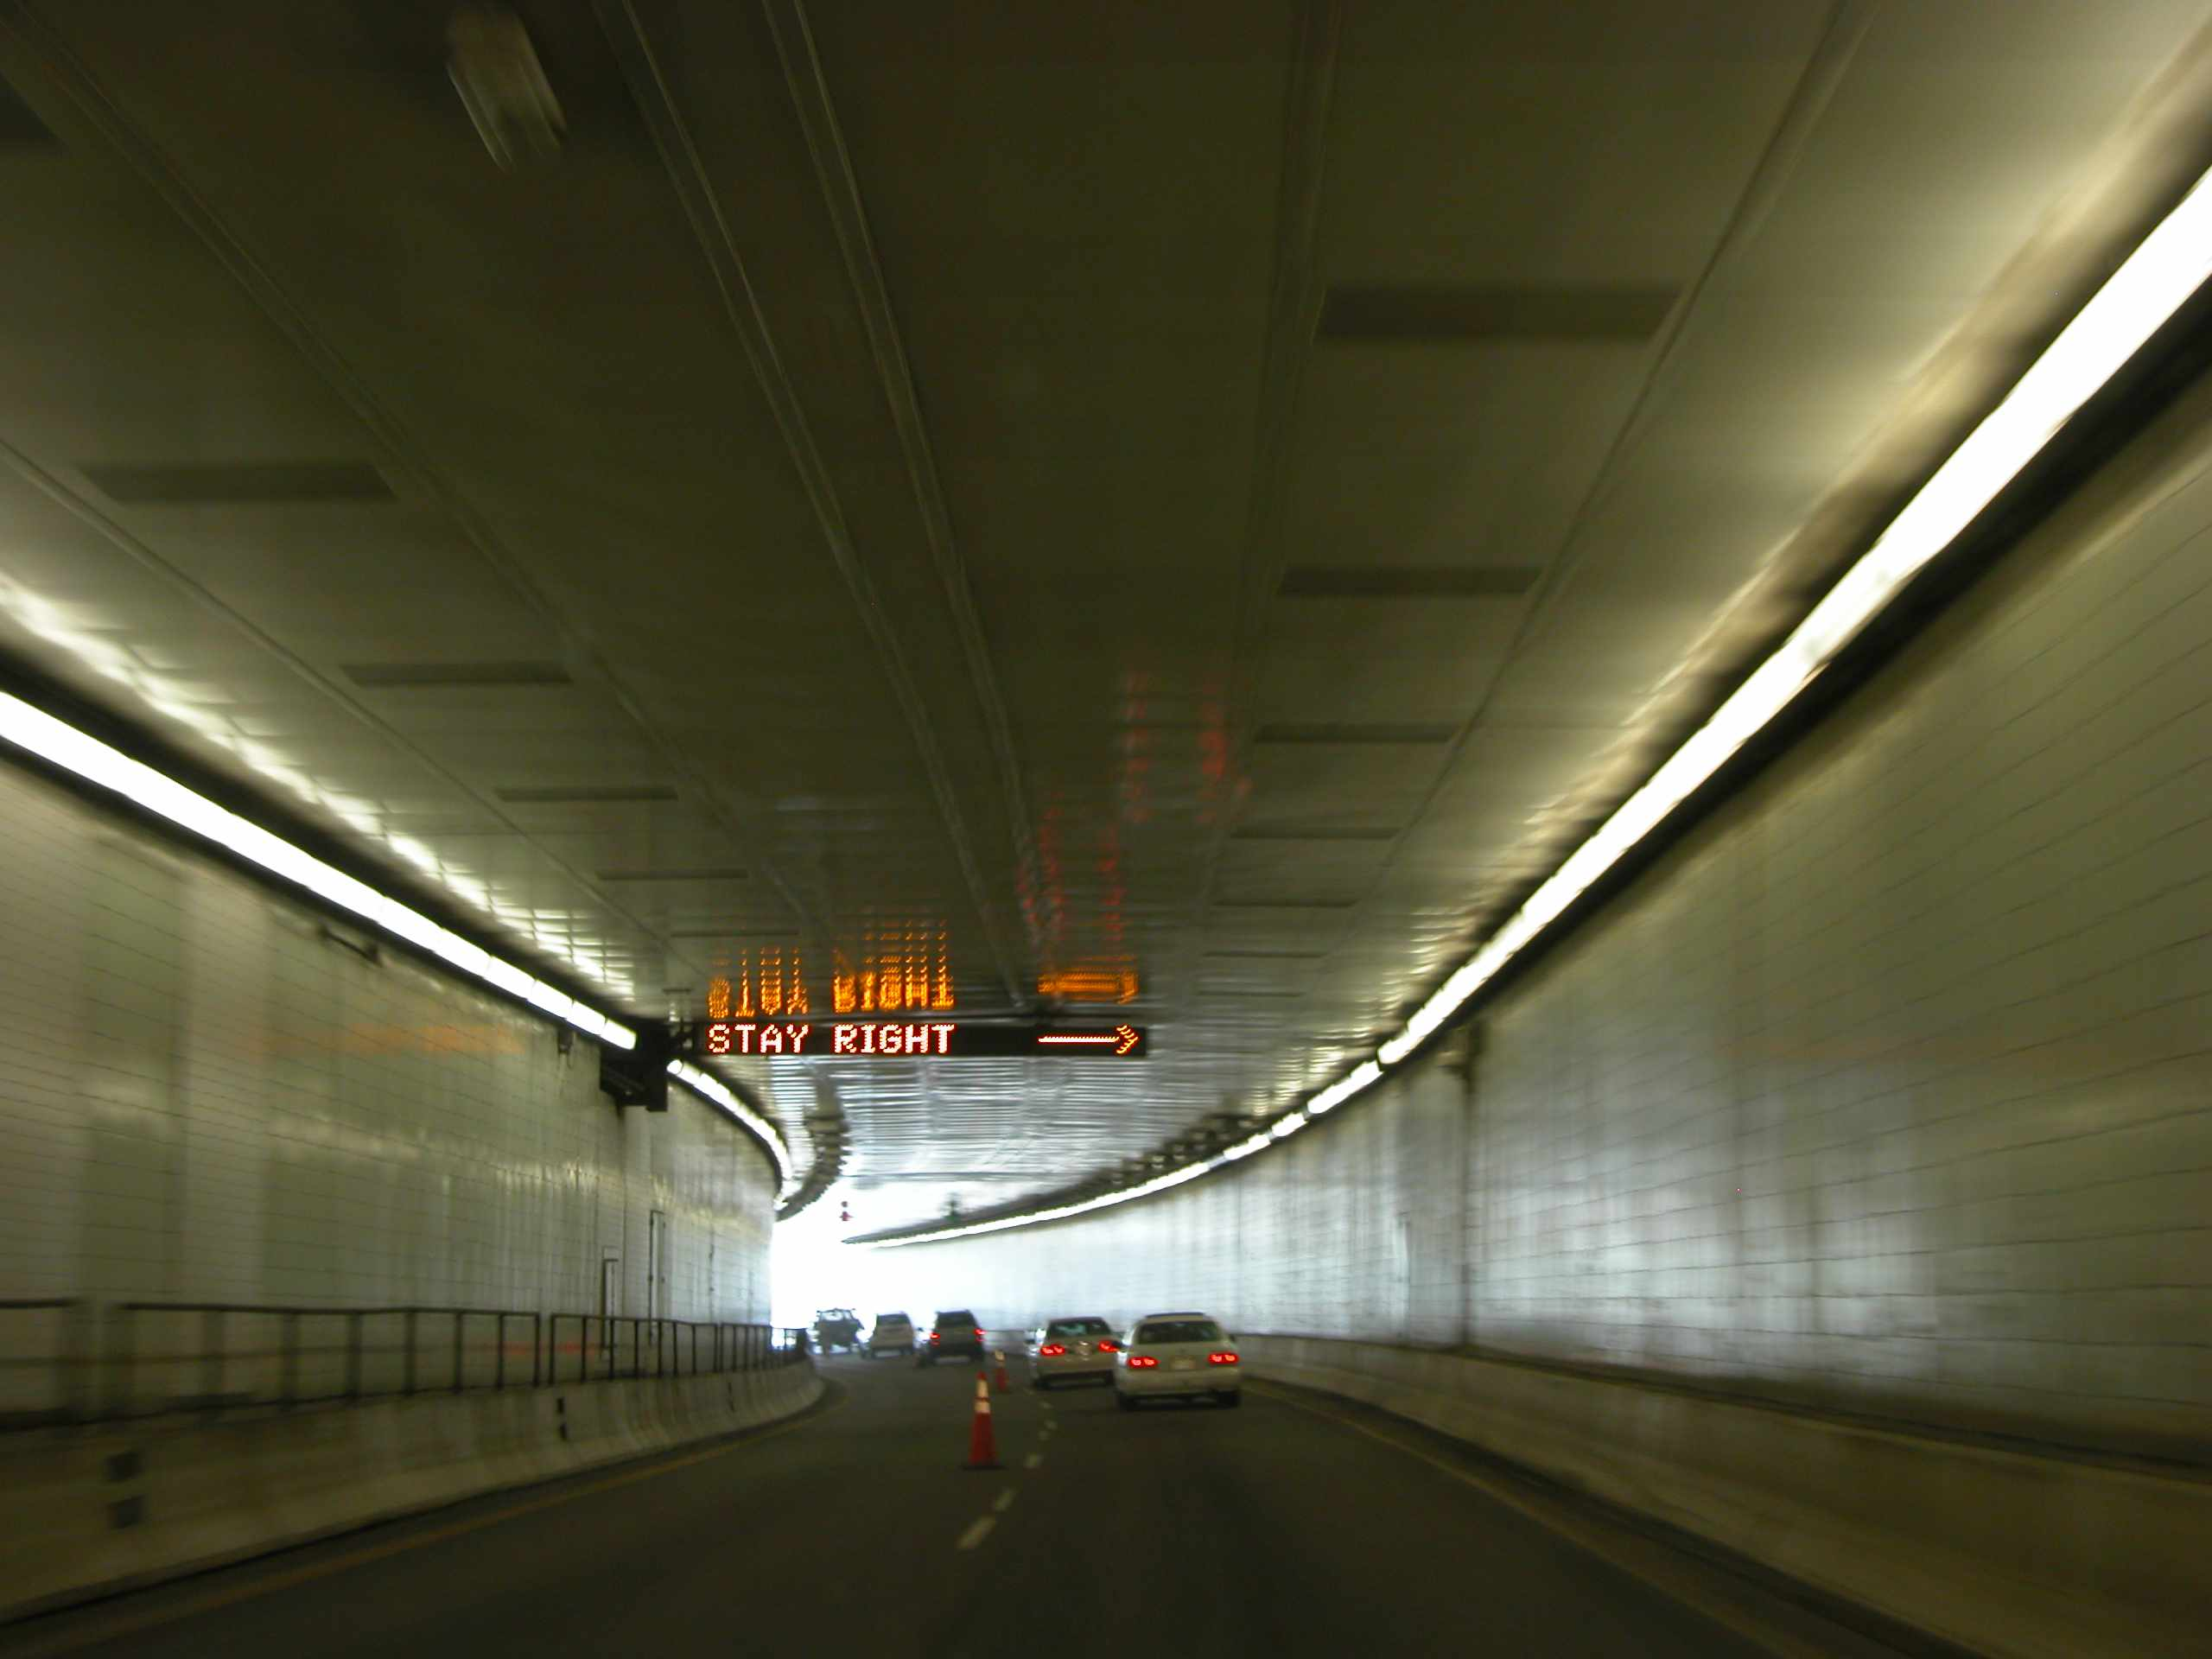 Traffic flows through the Eisenhower Tunnel located on the I-70 in Colorado